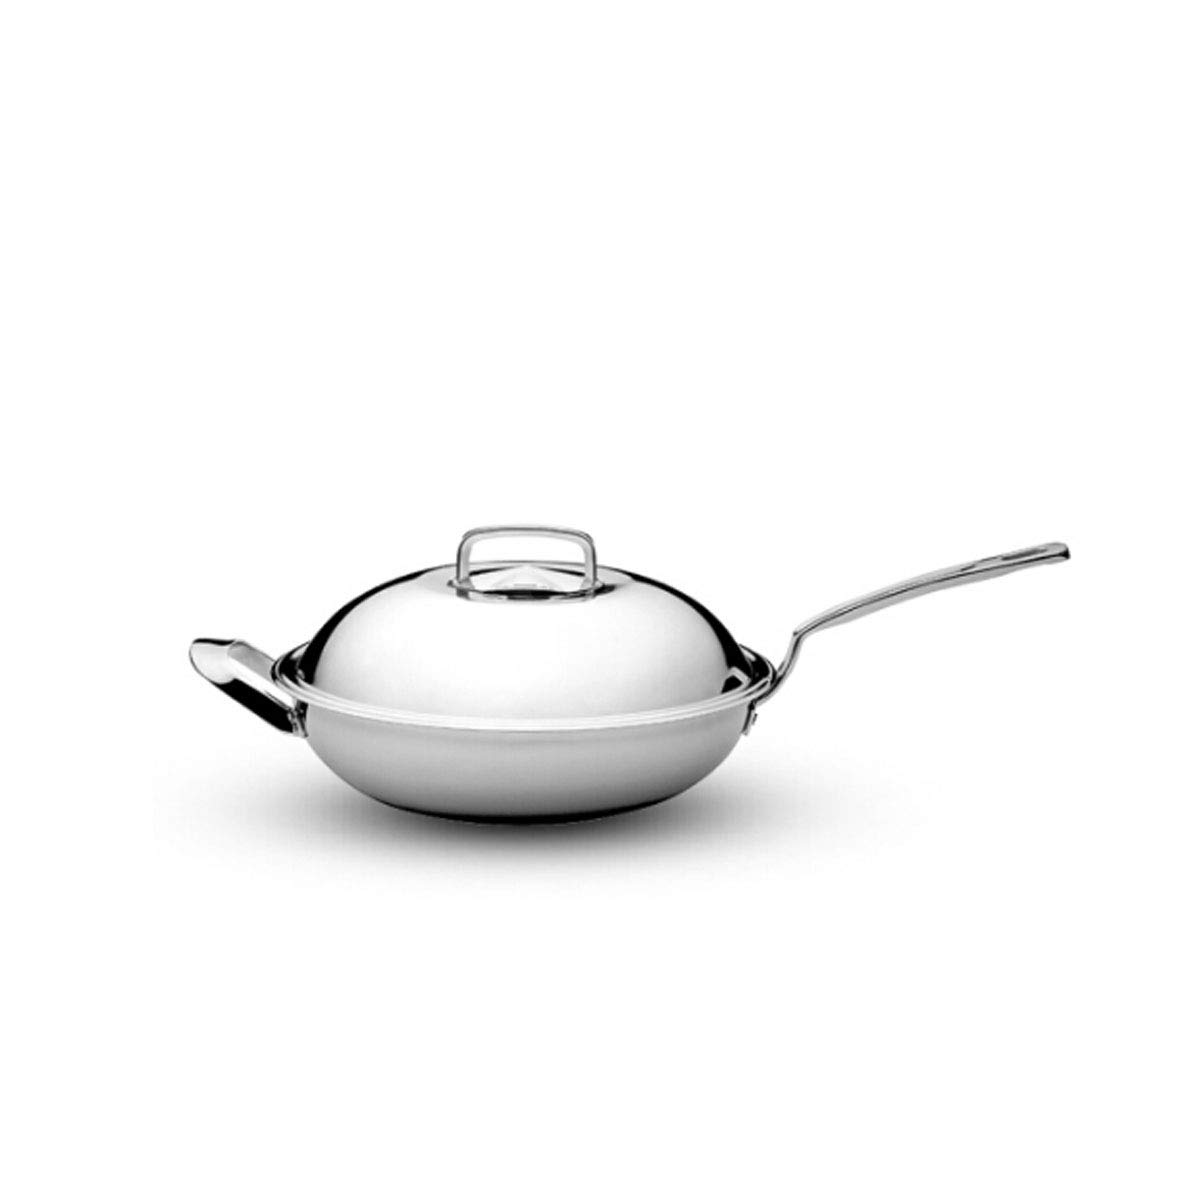 8haowenju Pan,Kitchen Standard 12.8-inch Stainless Steel Frying Pan, Uncoated Pot, Induction Cooker and Gas Stove Can Be Used, Silver White Multi-Purpose Pot (Size : 32cm)